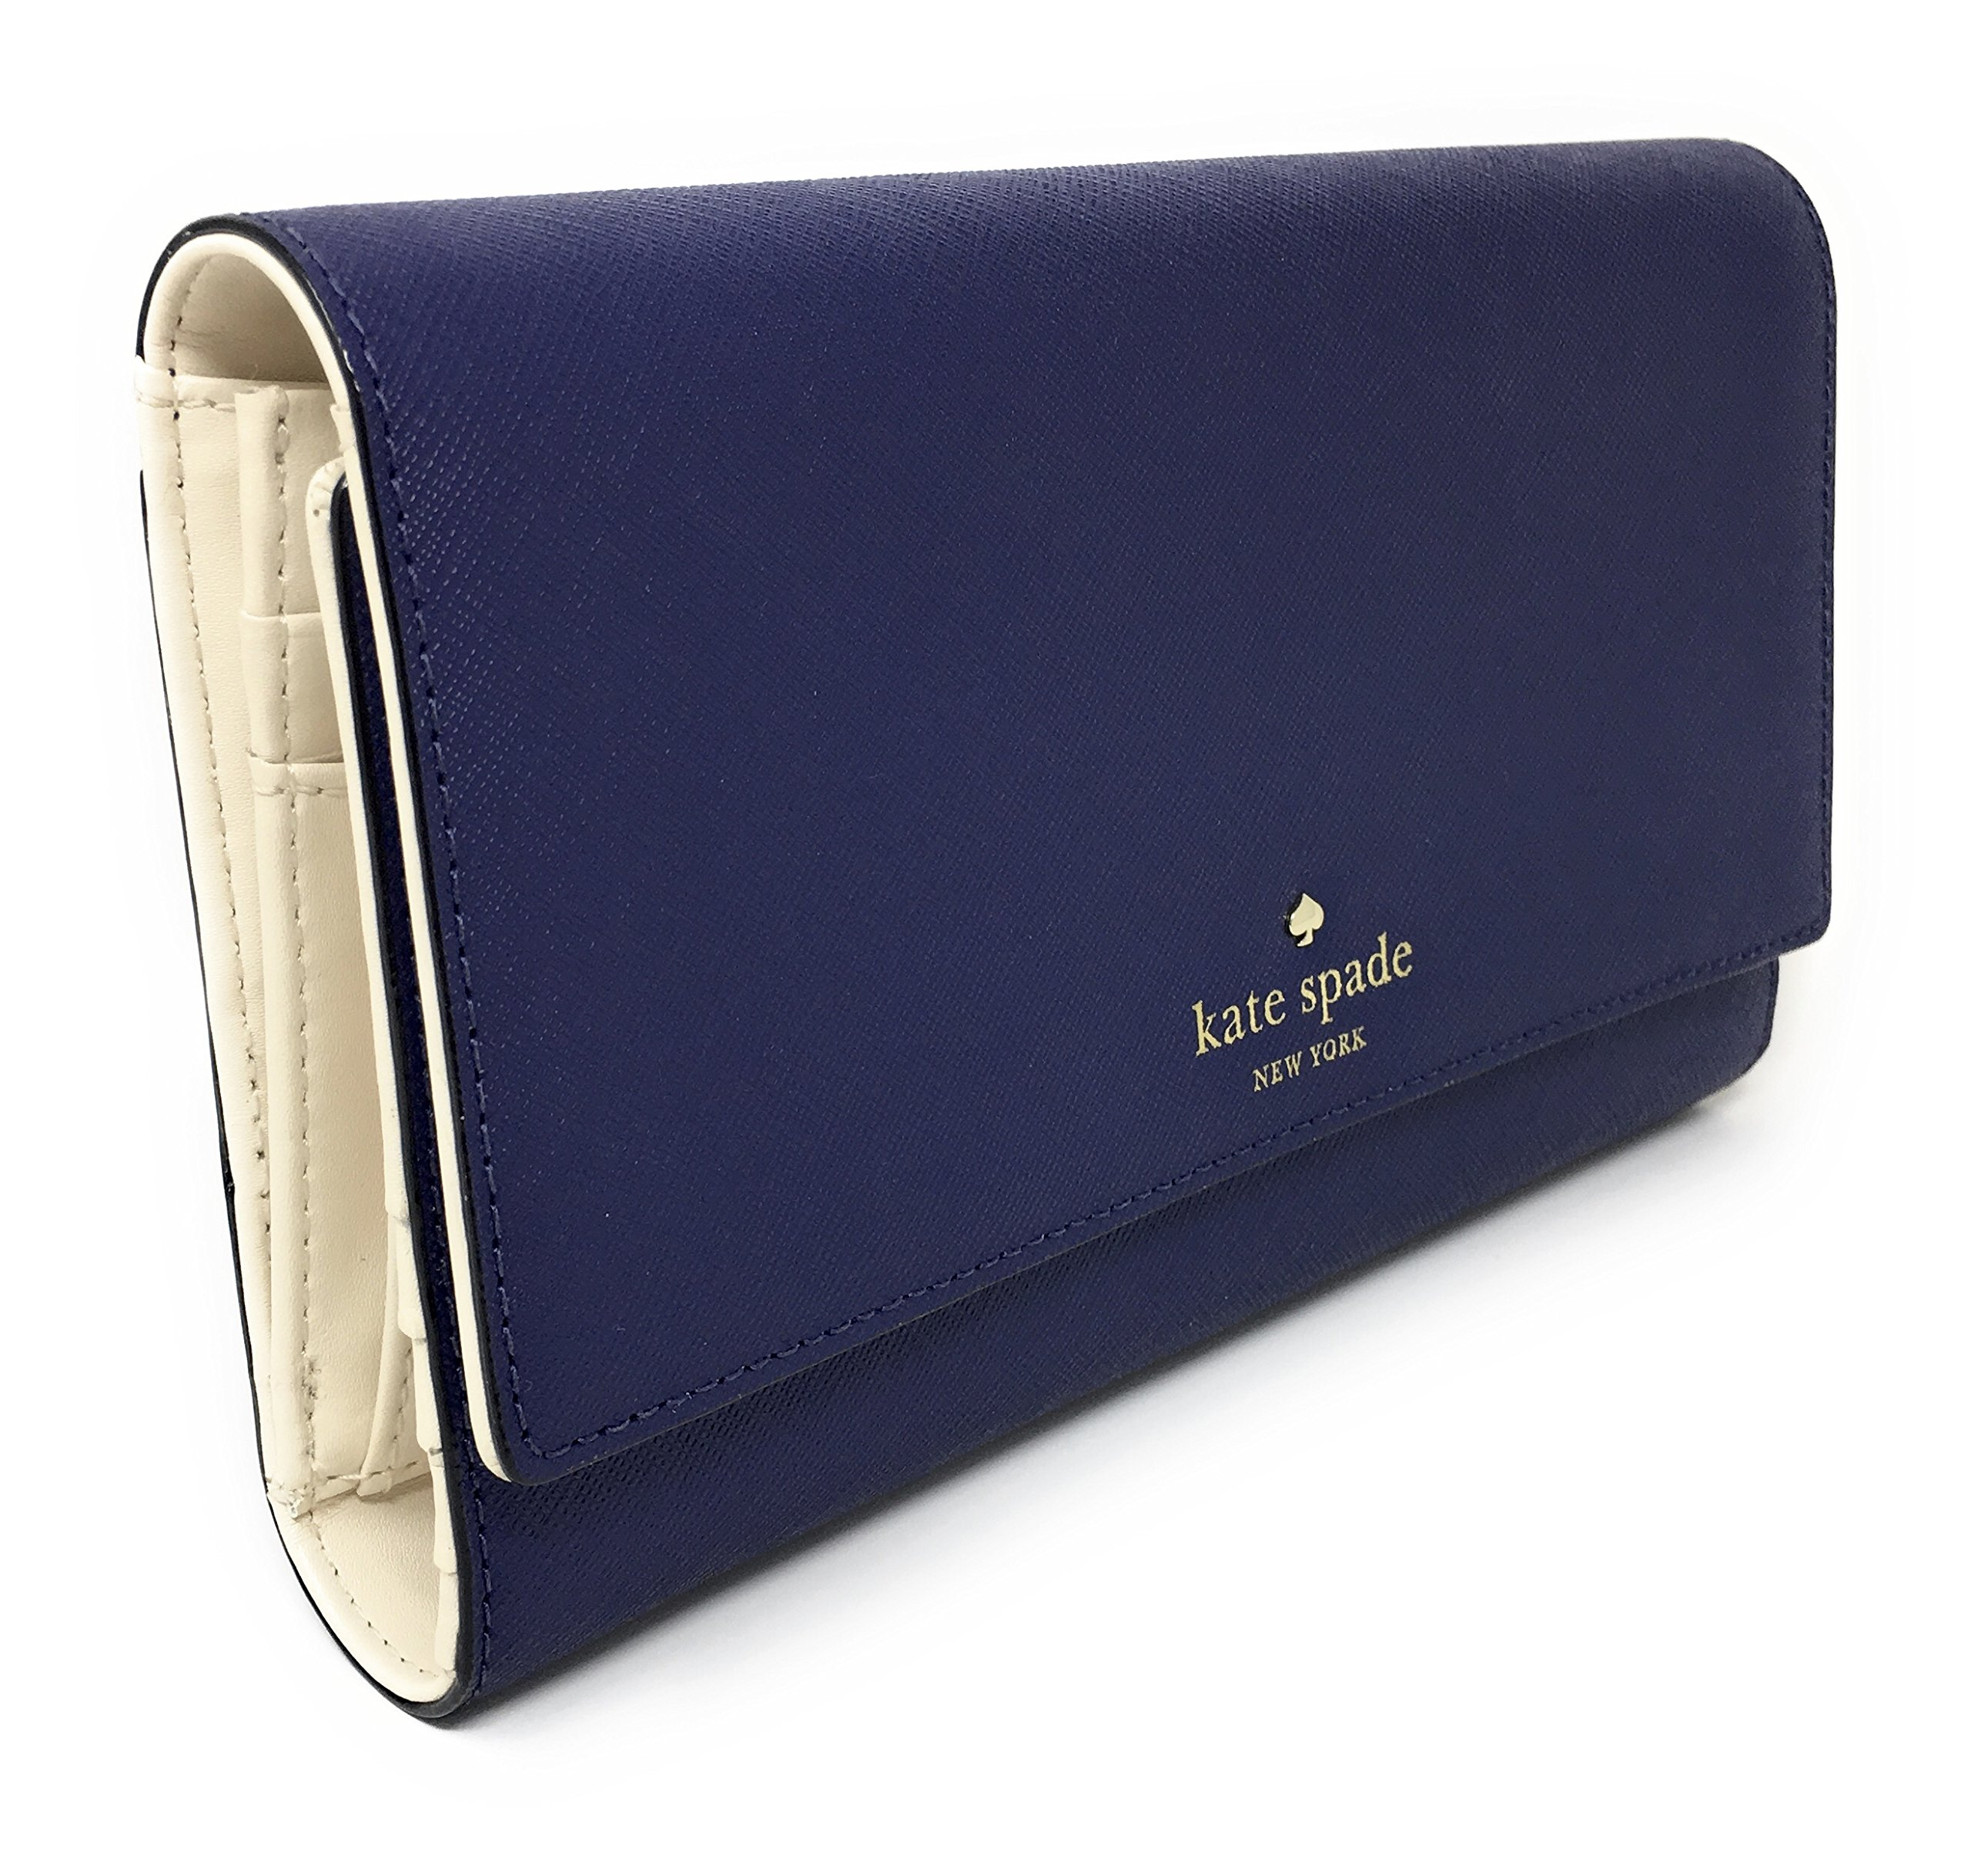 Kate Spade New York Mikas Pond Phoenix Trifold Leather Wallet (Sapphire) by Kate Spade New York (Image #2)